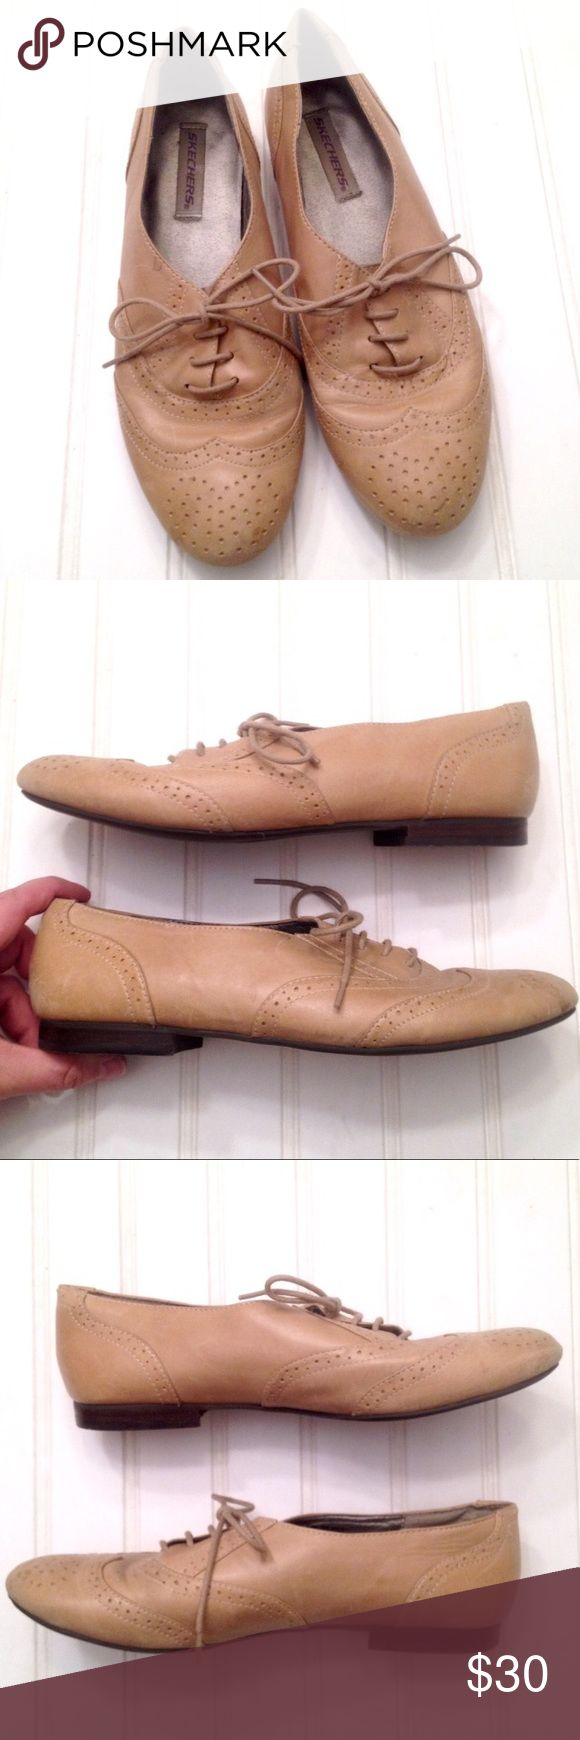 """Genuine tan leather lace-up Oxfords loafers From Skechers, these tan genuine leather Oxford loafers have all the details of a classic dress shoe in a feminine cut, including low ankle and tapered almond toe. Hard rubber heel and flexible smooth rubber sole. Size 7.5 but run a little small. Insole: 9.5"""". Width at widest on bottom: 3 1/4"""". Heel height: 1/2"""". VGUC. A couple water spots on front of both shoes and light surface scuffs to heels but overall well-kept. Feel free to ask questions or…"""